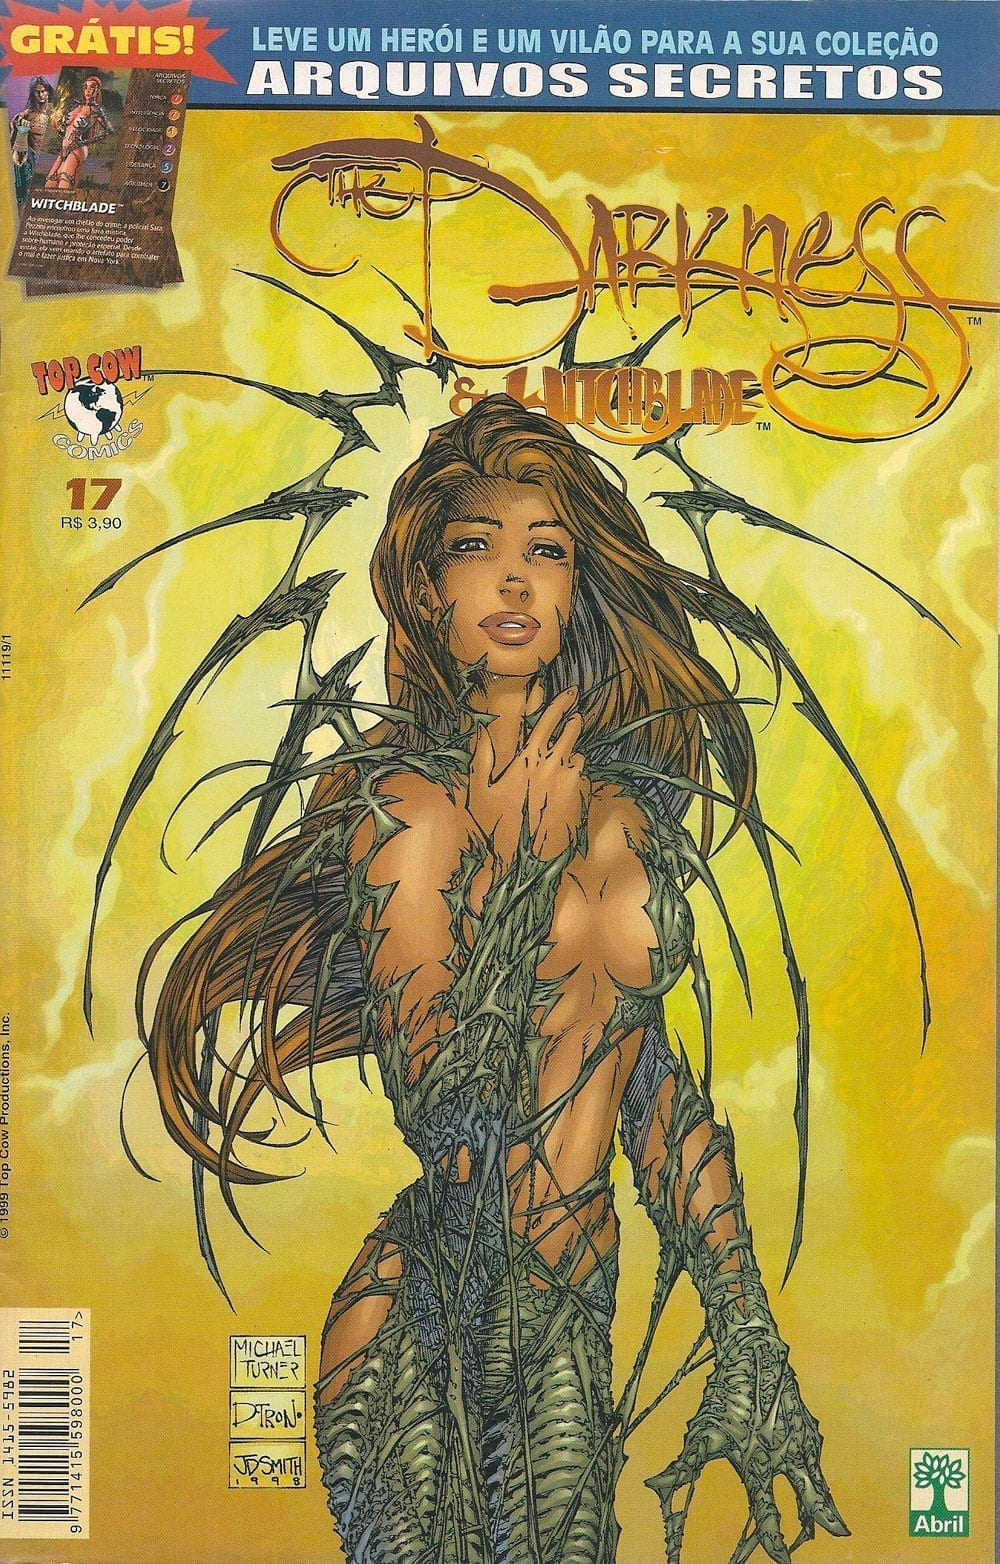 <span>The Darkness & Witchblade 17</span>